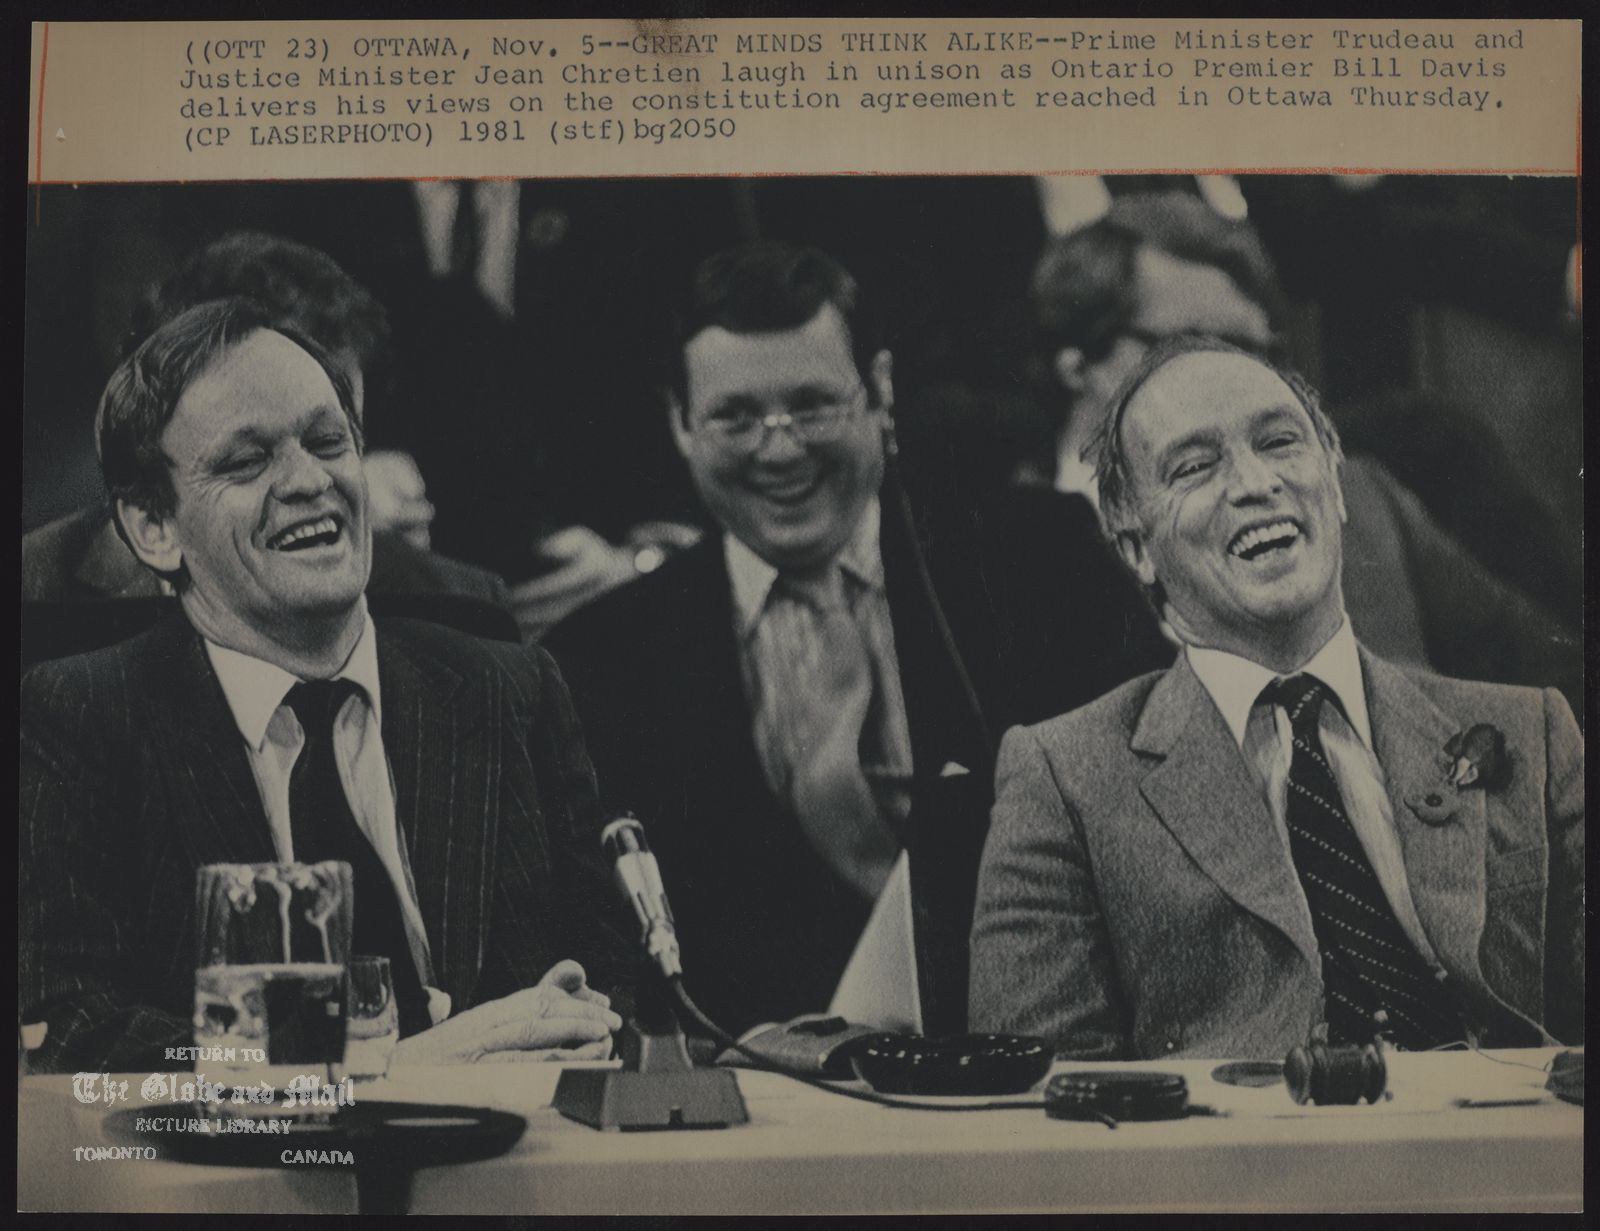 FEDERAL PROVINCIAL CONSTITUTIONAL CONFERENCES (OTT 23) OTTAWA, Nov 5--GREAT MINDS THINK ALIKE--Prime Minister Trudeau and Justice Minister Jean Chretien laugh in unison as Ontario Premier Bill Davis delivers his views on the constitution agreement reached in Ottawa Thursday. (CP LASERPHOTO) 1981 (stf) bg2050